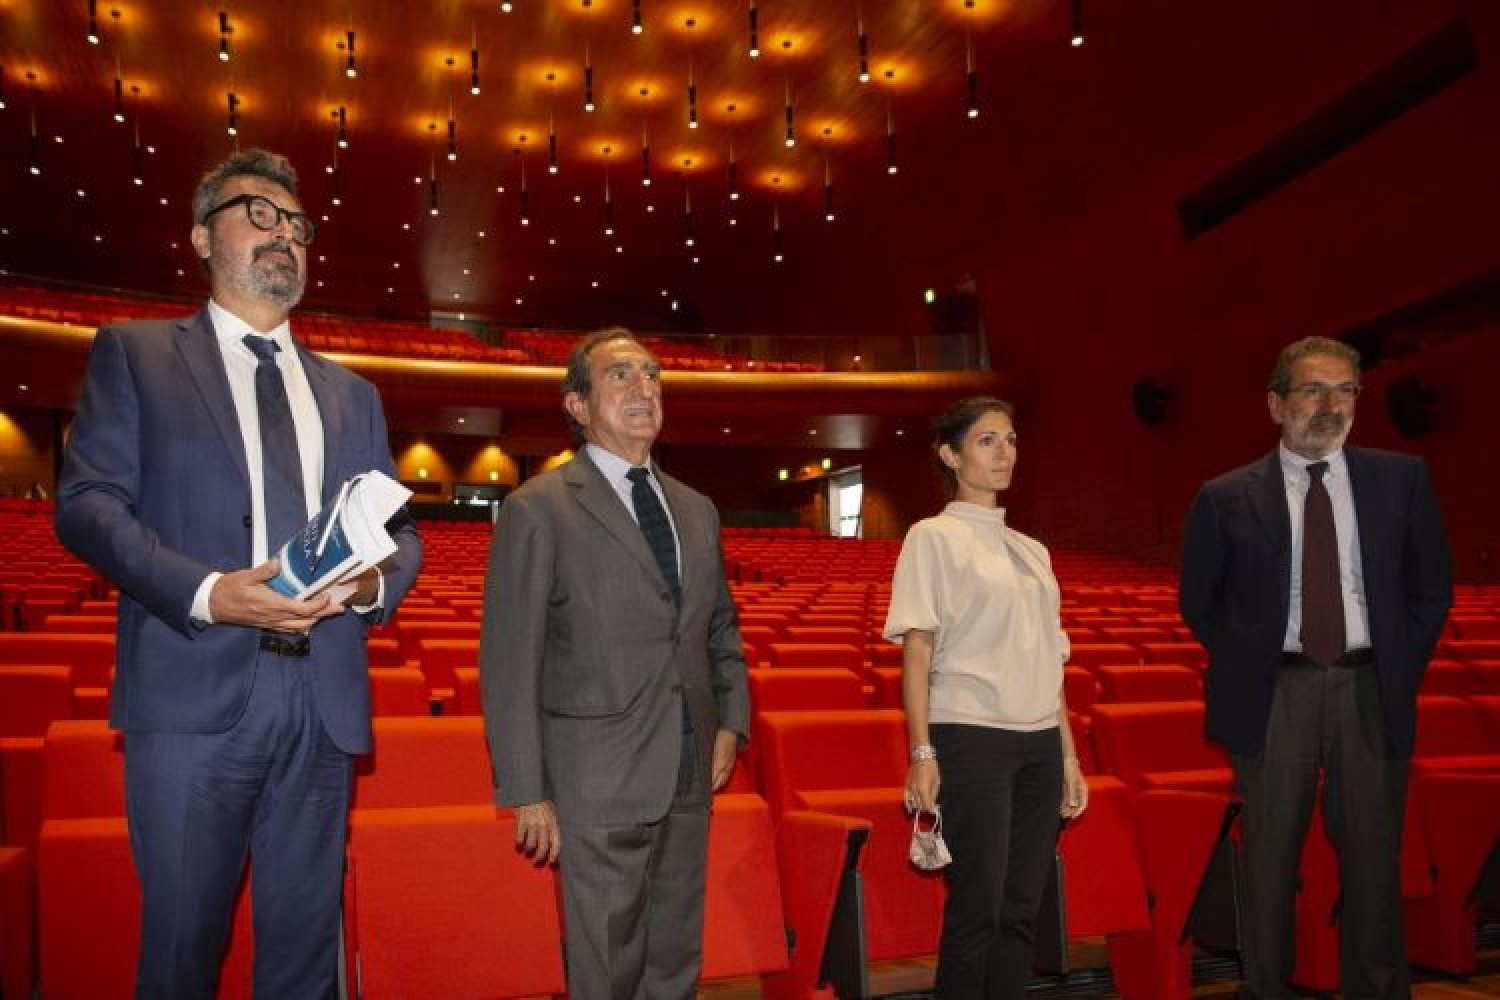 Roma Convention Center La Nuvola, tre concerti gratuiti dell'Opera di Roma